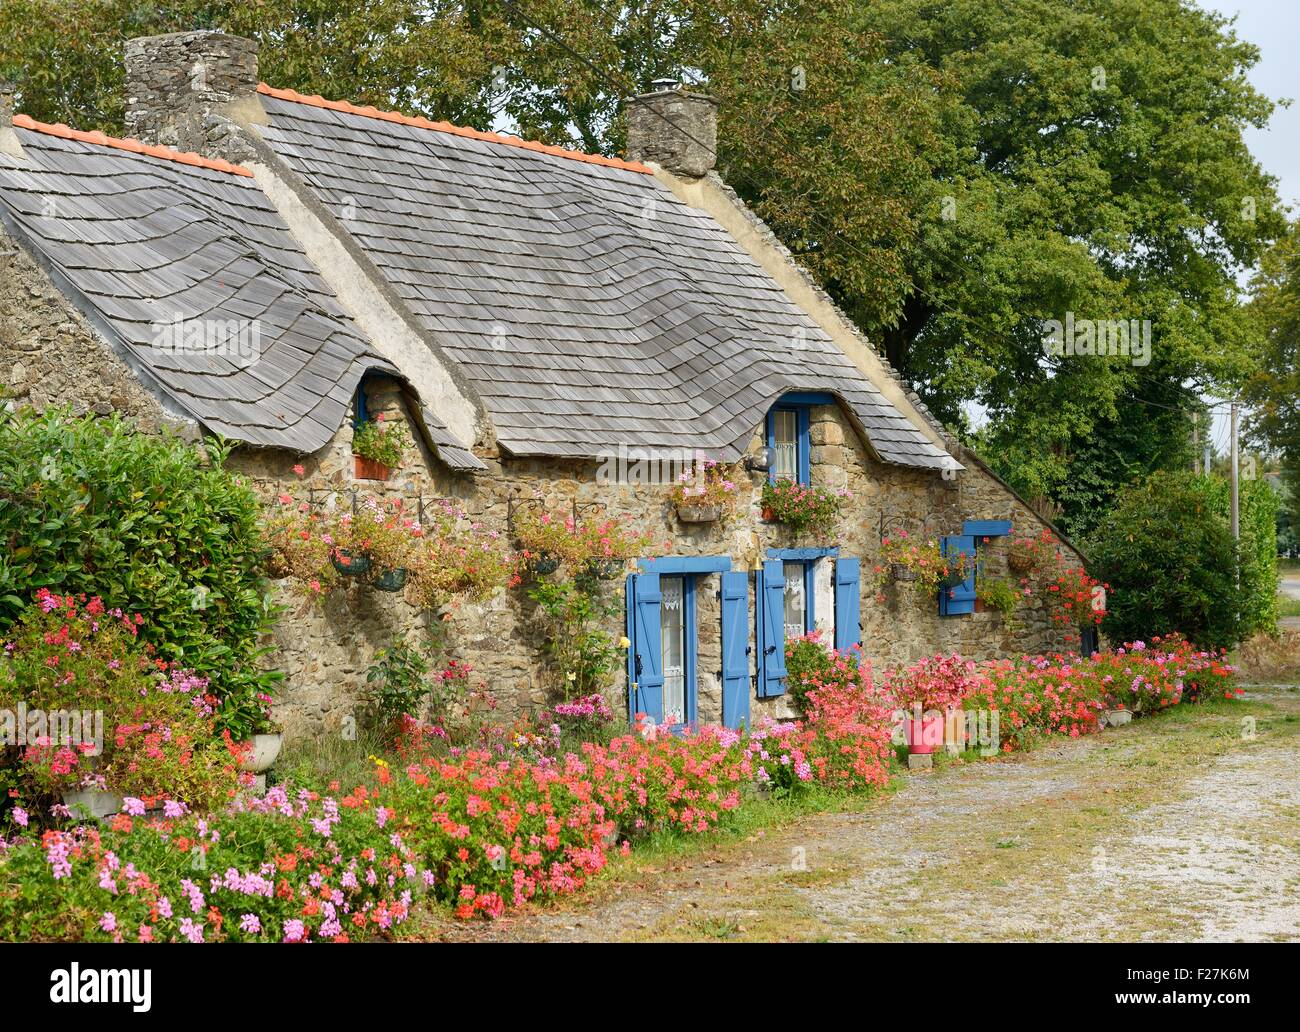 Square New Office further Michael Boodro also Stock Photo Traditional Old French Breton Rural Roadside Cottage House And Garden 87449900 together with Luxury Rv Interior Luxury Motorhomes Interior further Decorative Plug In Nightlights. on old world interior design ideas